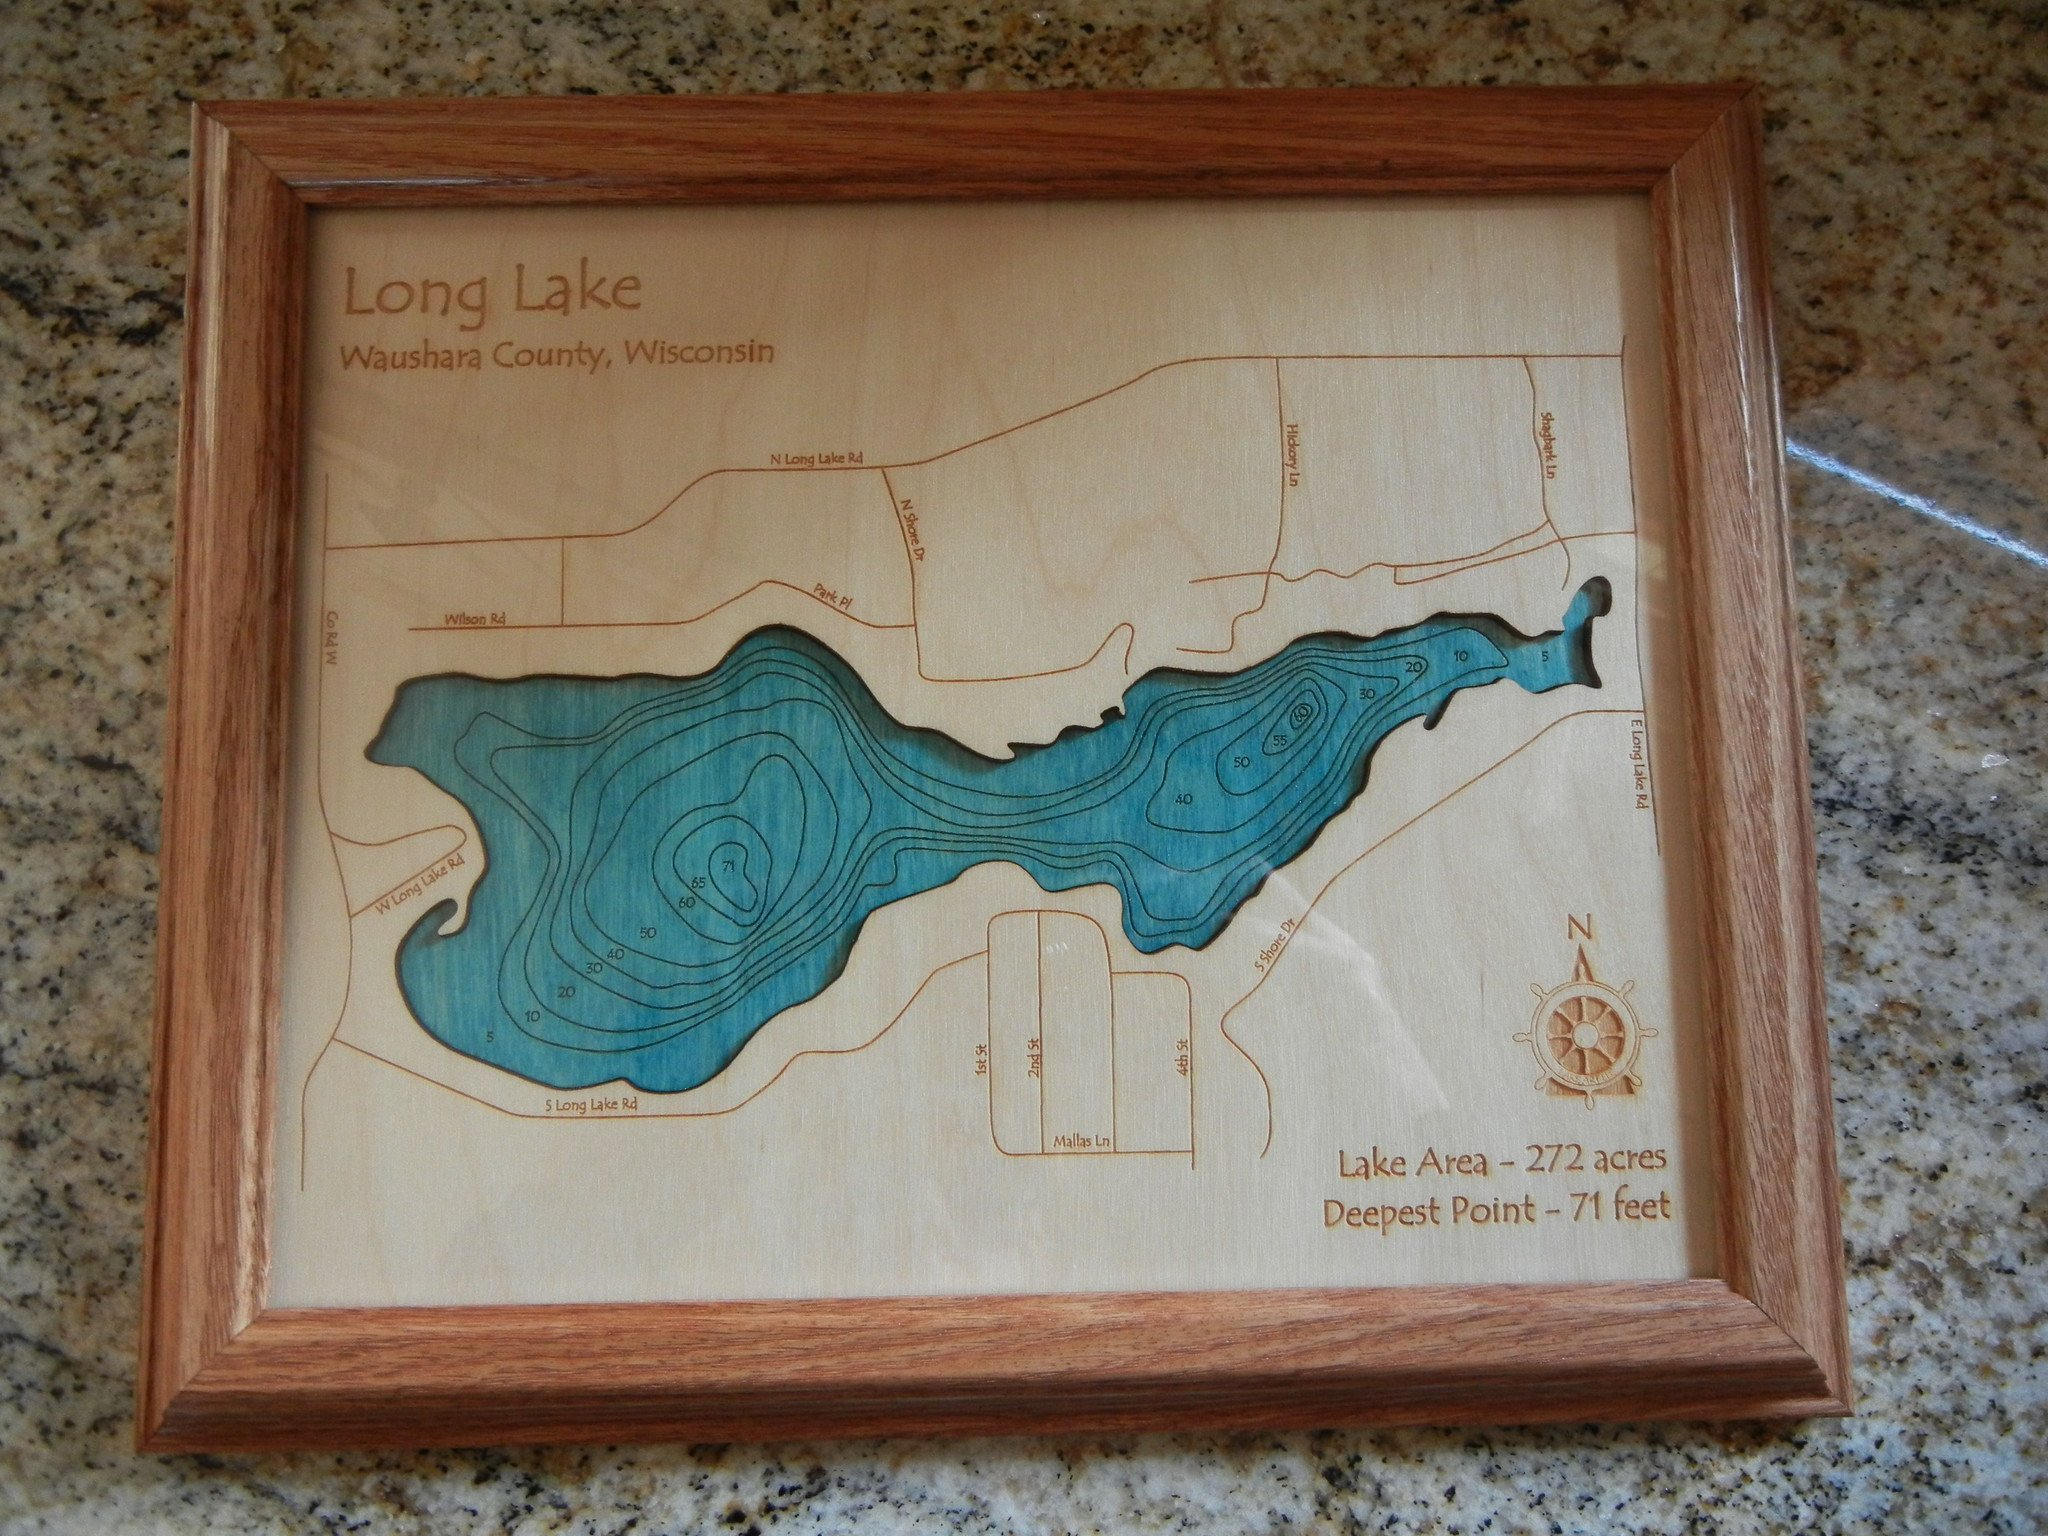 Lake Hamilton in Garland, AR - 2D Map 8 x 10 IN - Laser carved wood nautical chart and topographic depth map. by Long Lake Lifestyle (Image #3)